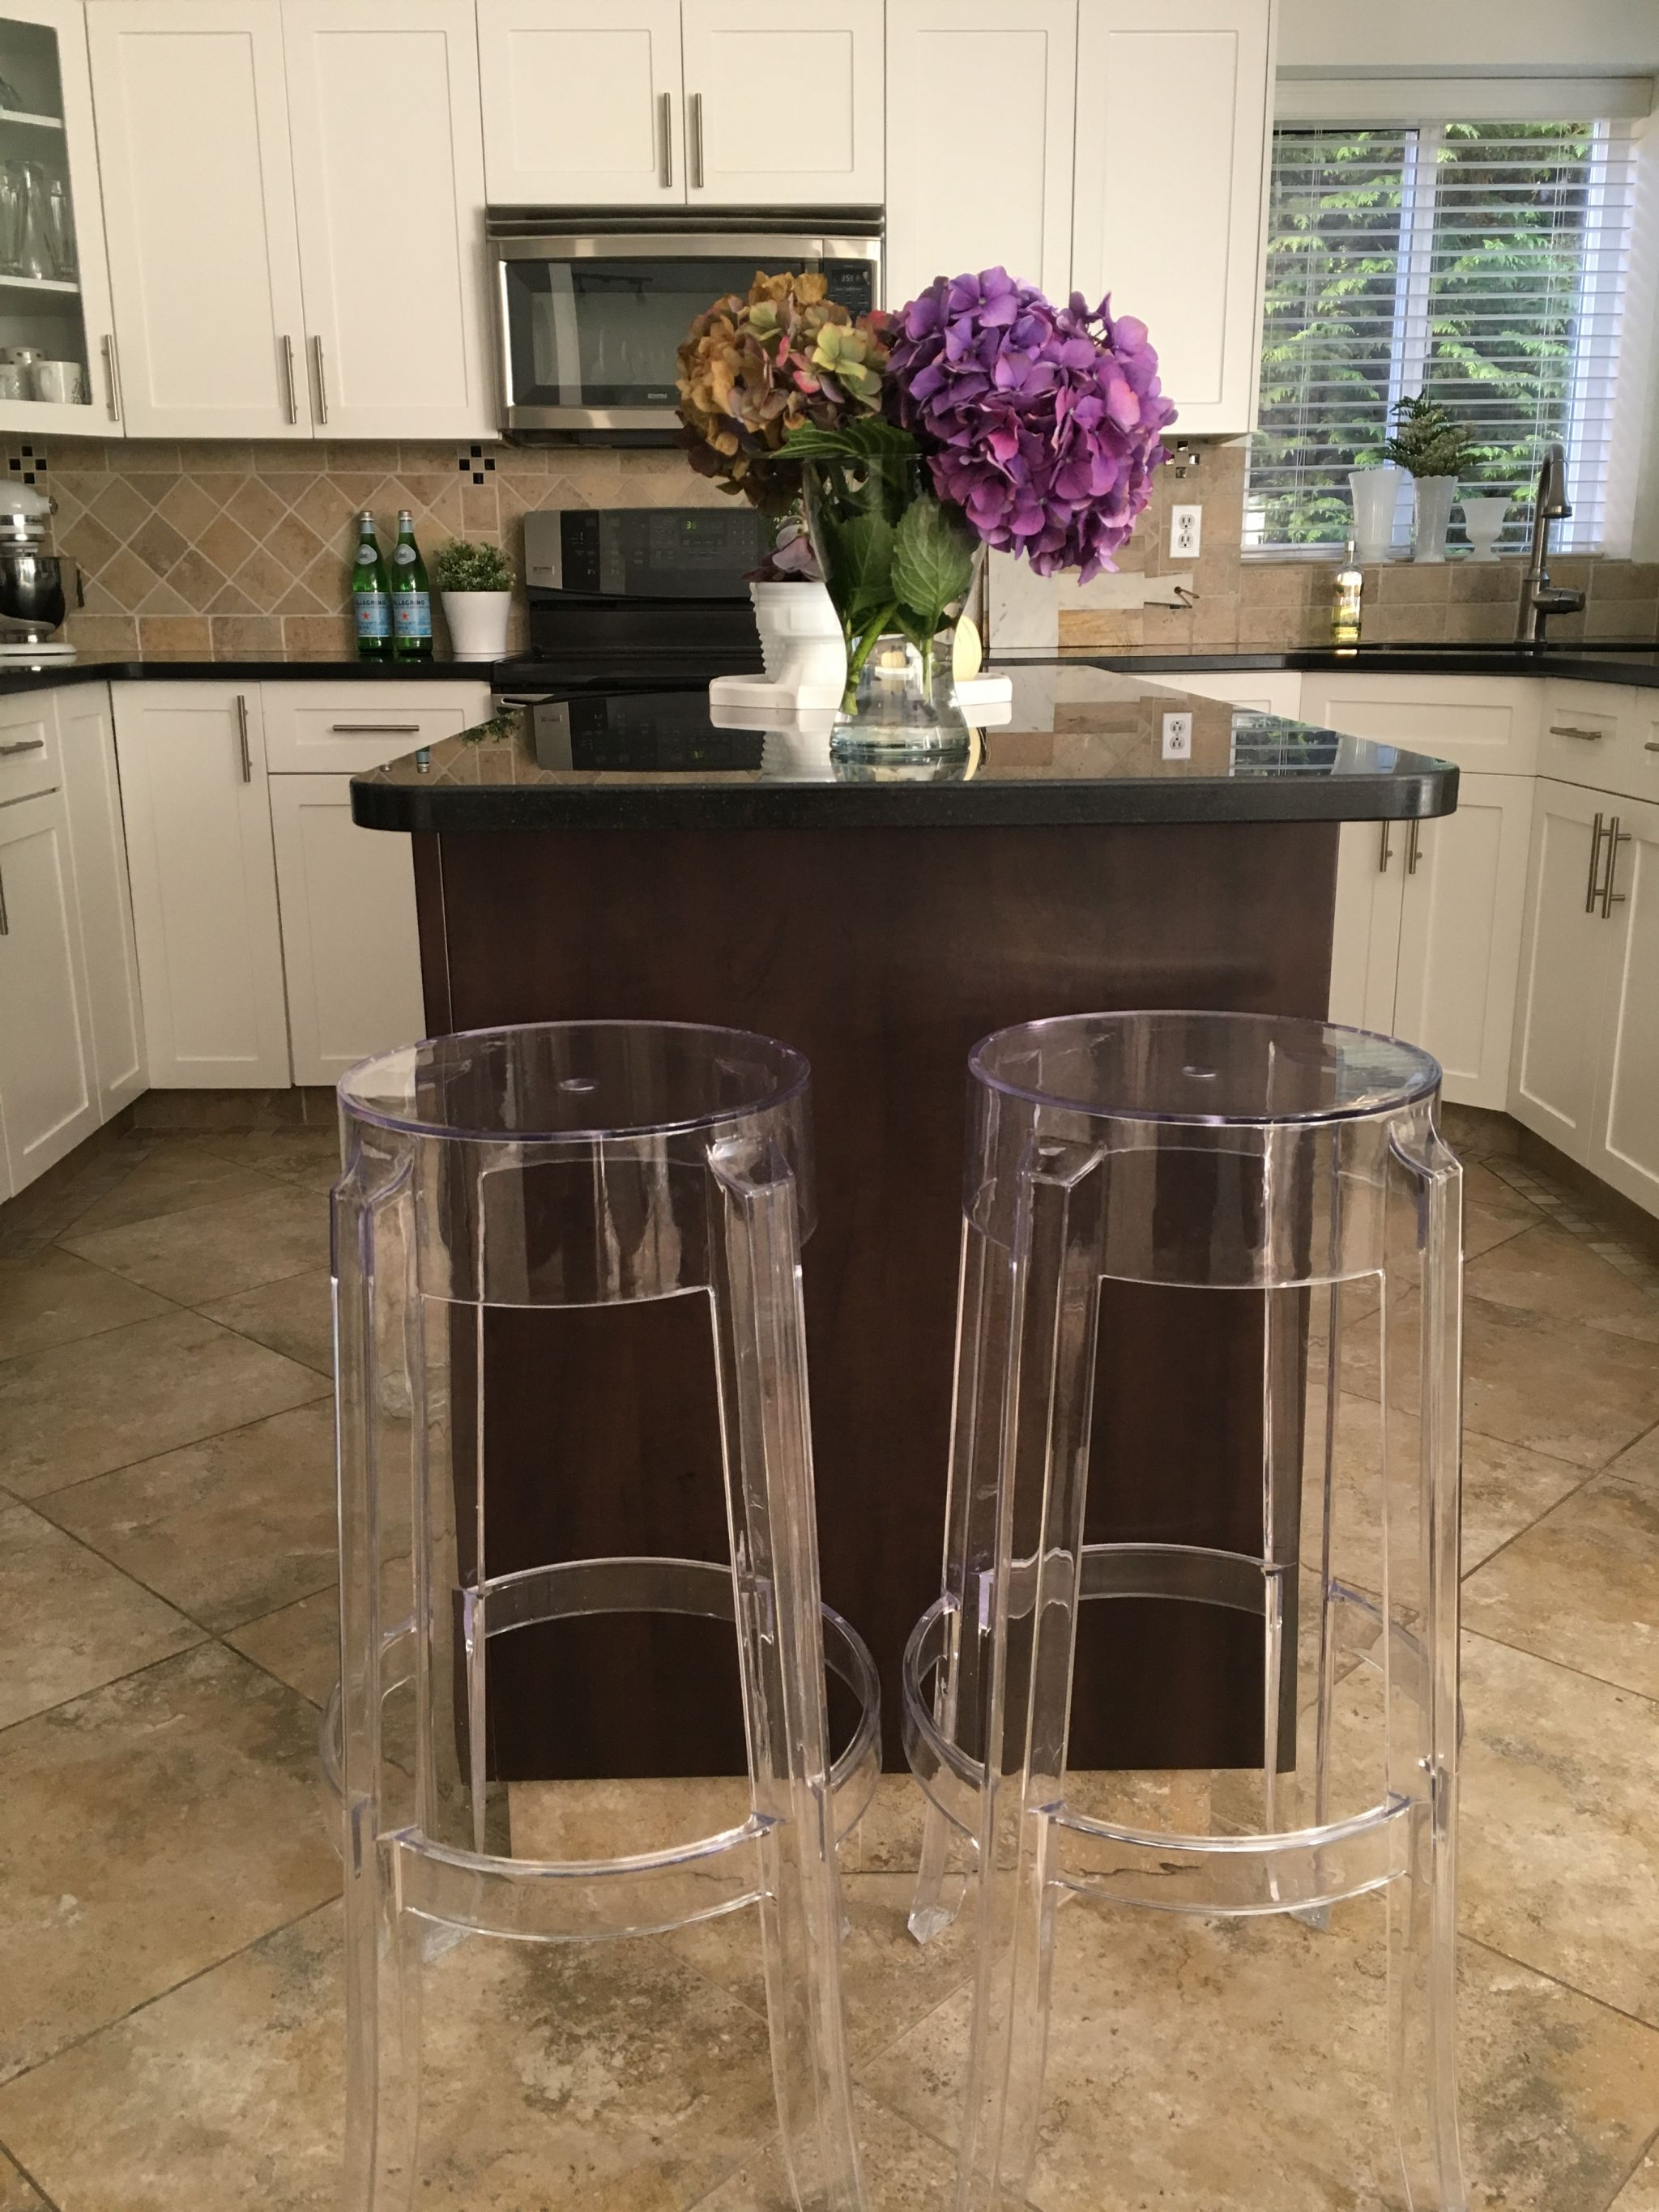 Styling Acrylic Furniture and Decor